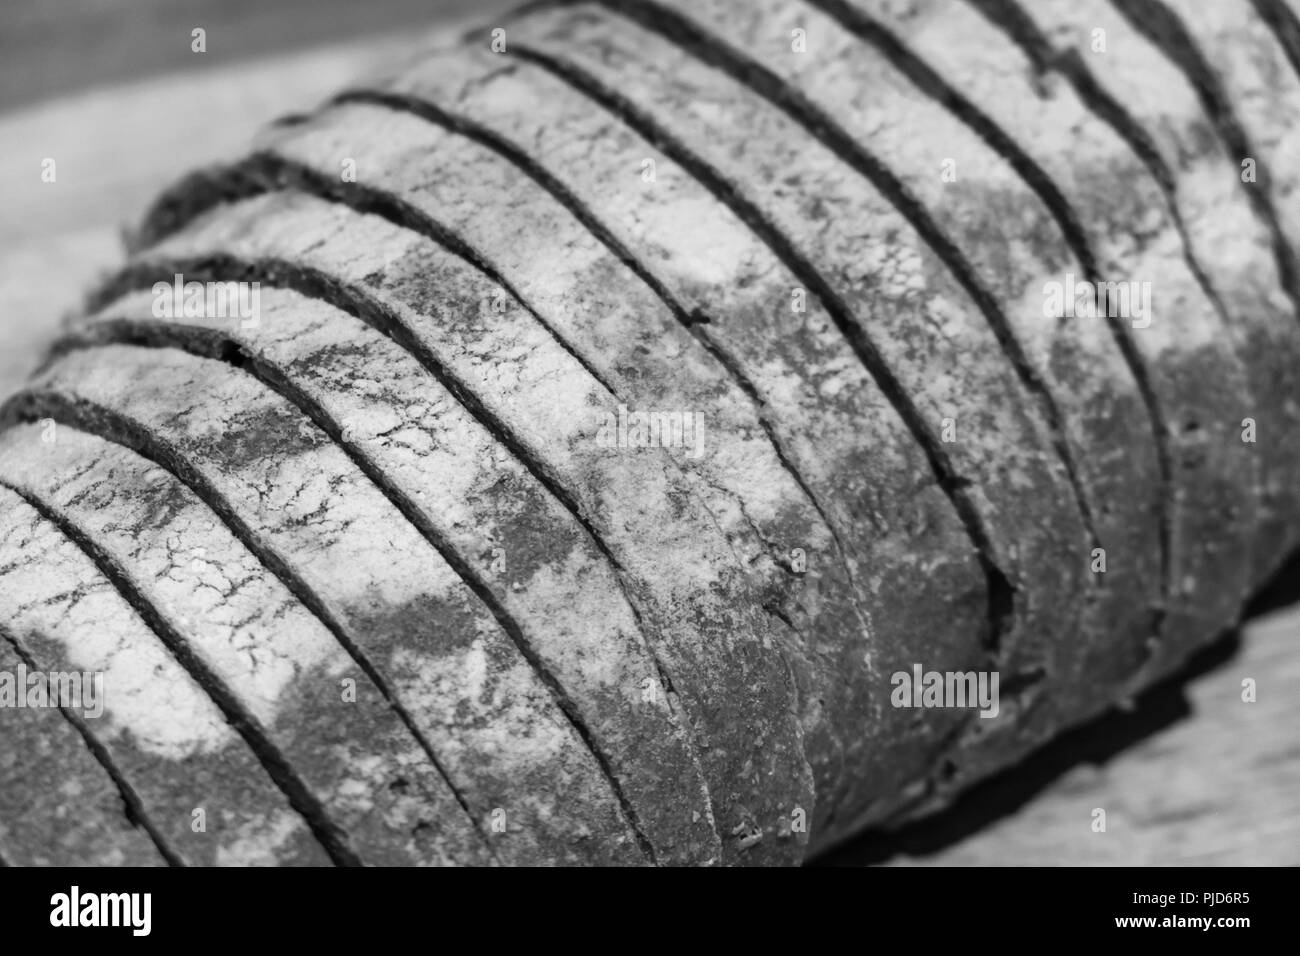 Sliced home baked artisan bread loaf, - abstract monochrome texture and pattern in black and white - Stock Image